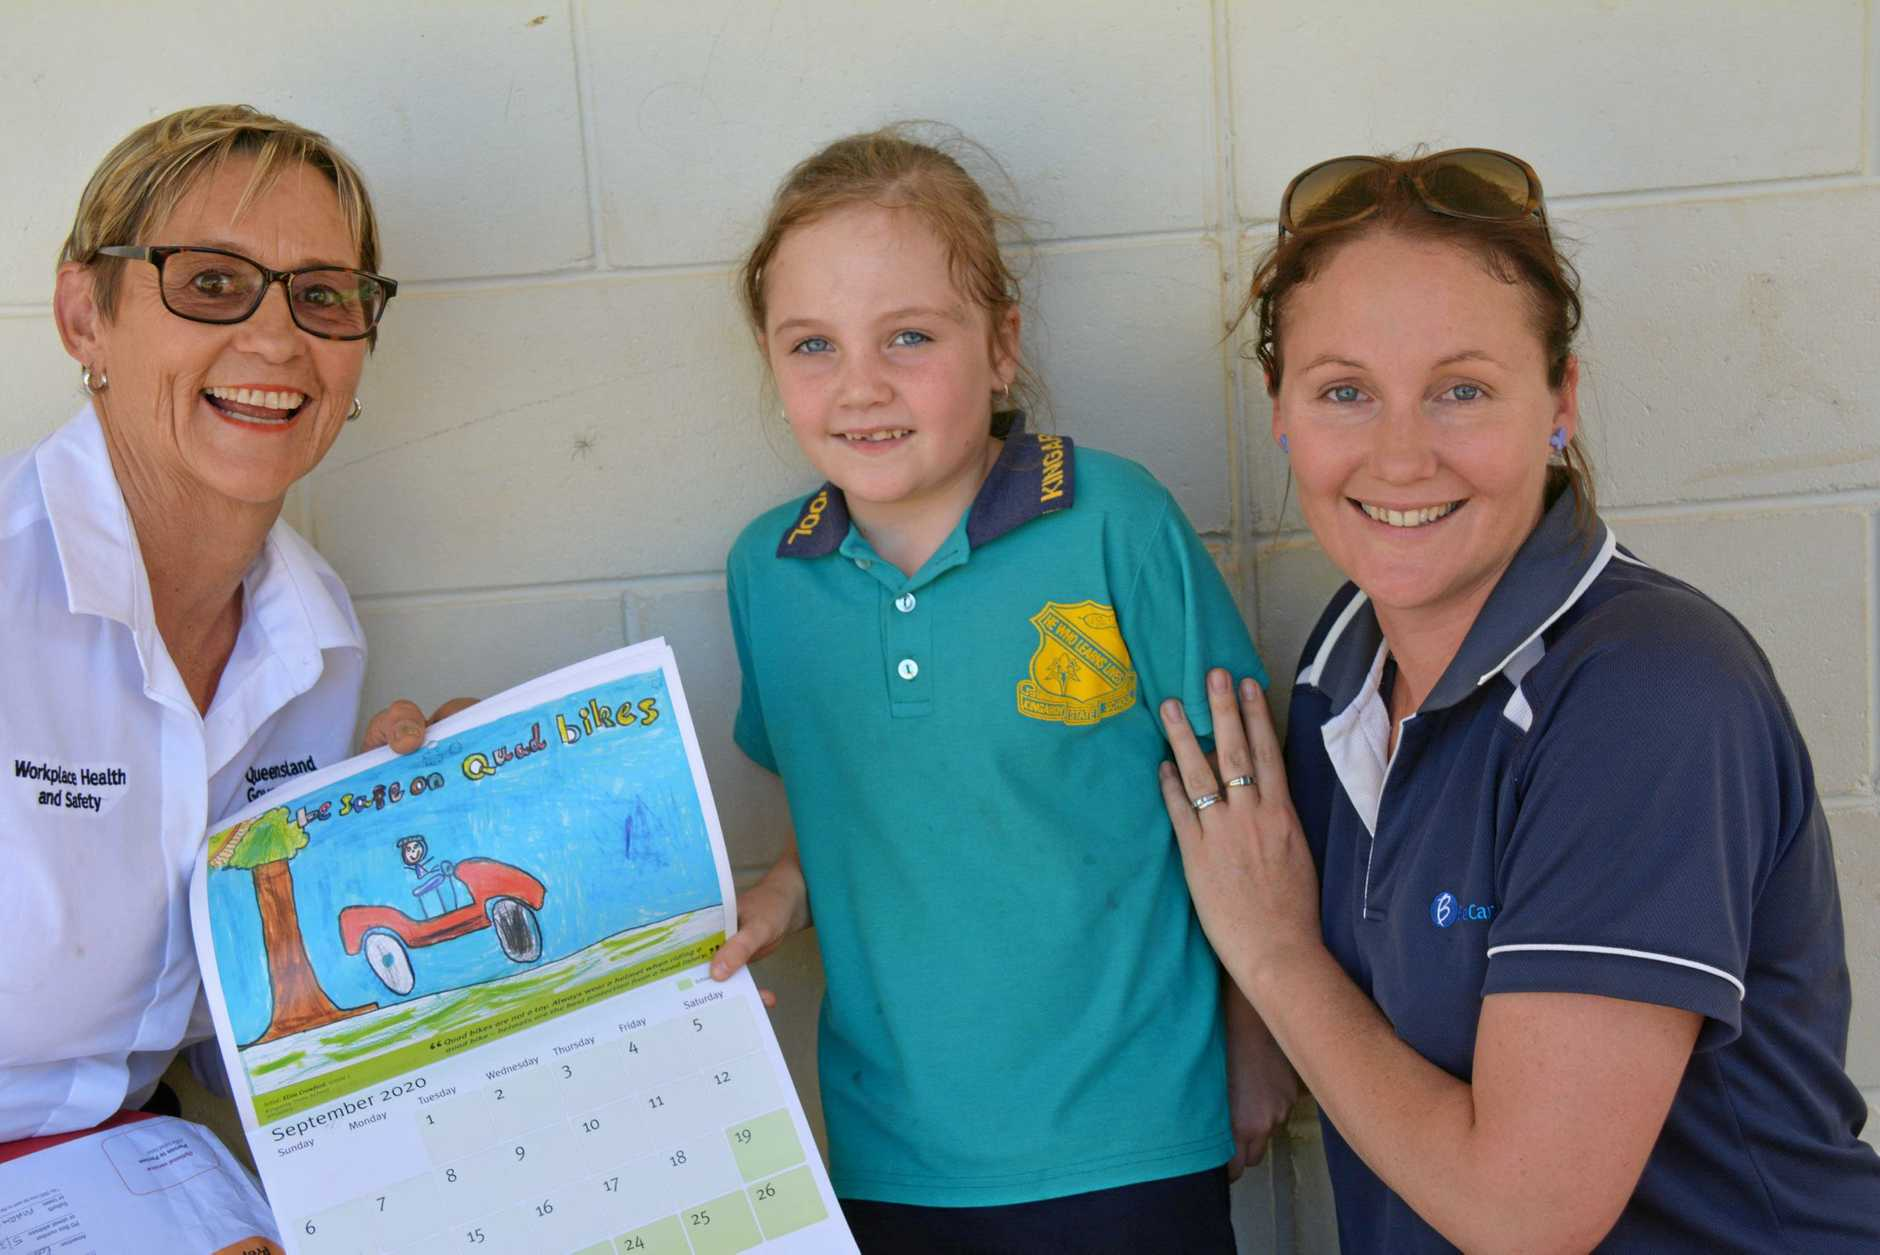 Roslyn Rees from Workplace Health and Safety Queensland made the trek to Kingaroy to visit Eliza Crawford and her mother Kelly Crawford and present Eliza with her prizes.